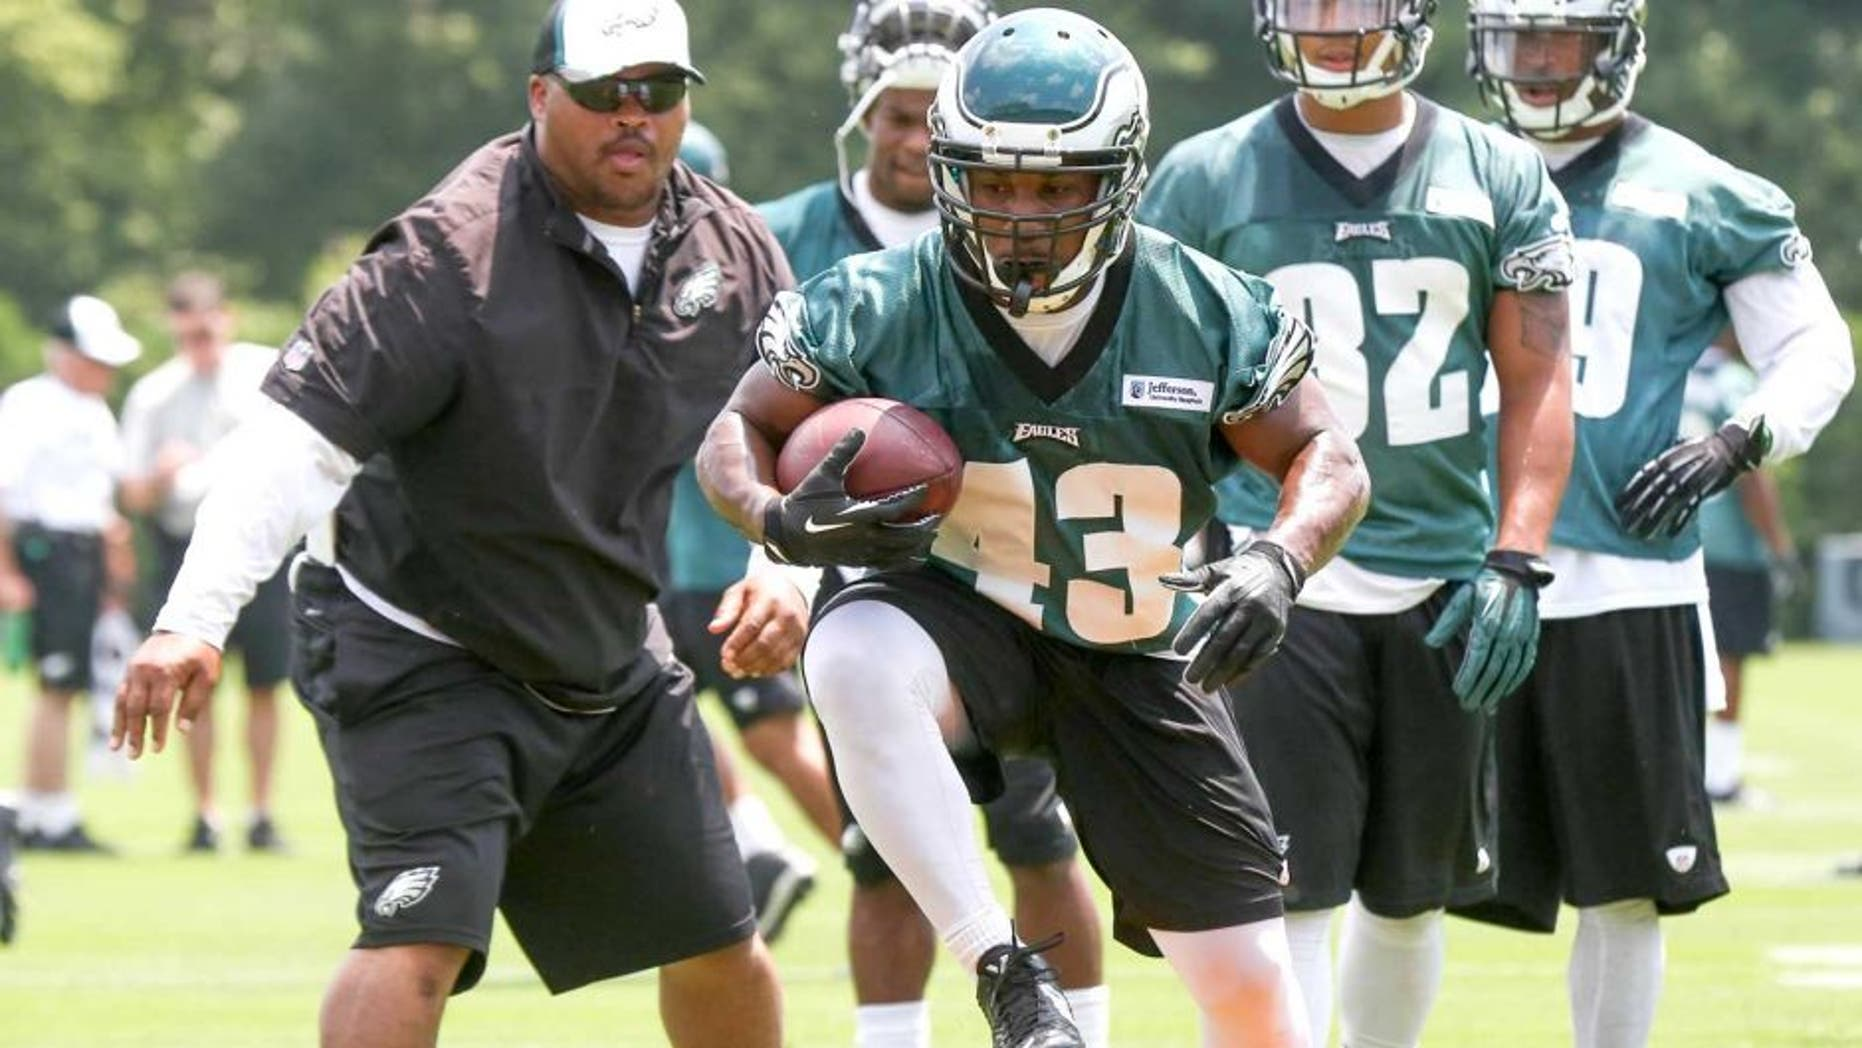 Jun 17, 2014; Philadelphia, PA, USA; Running back Darren Sproles (43) runs drills during mini camp at the Philadelphia Eagles NovaCare Complex. Mandatory Credit: Bill Streicher-USA TODAY Sports